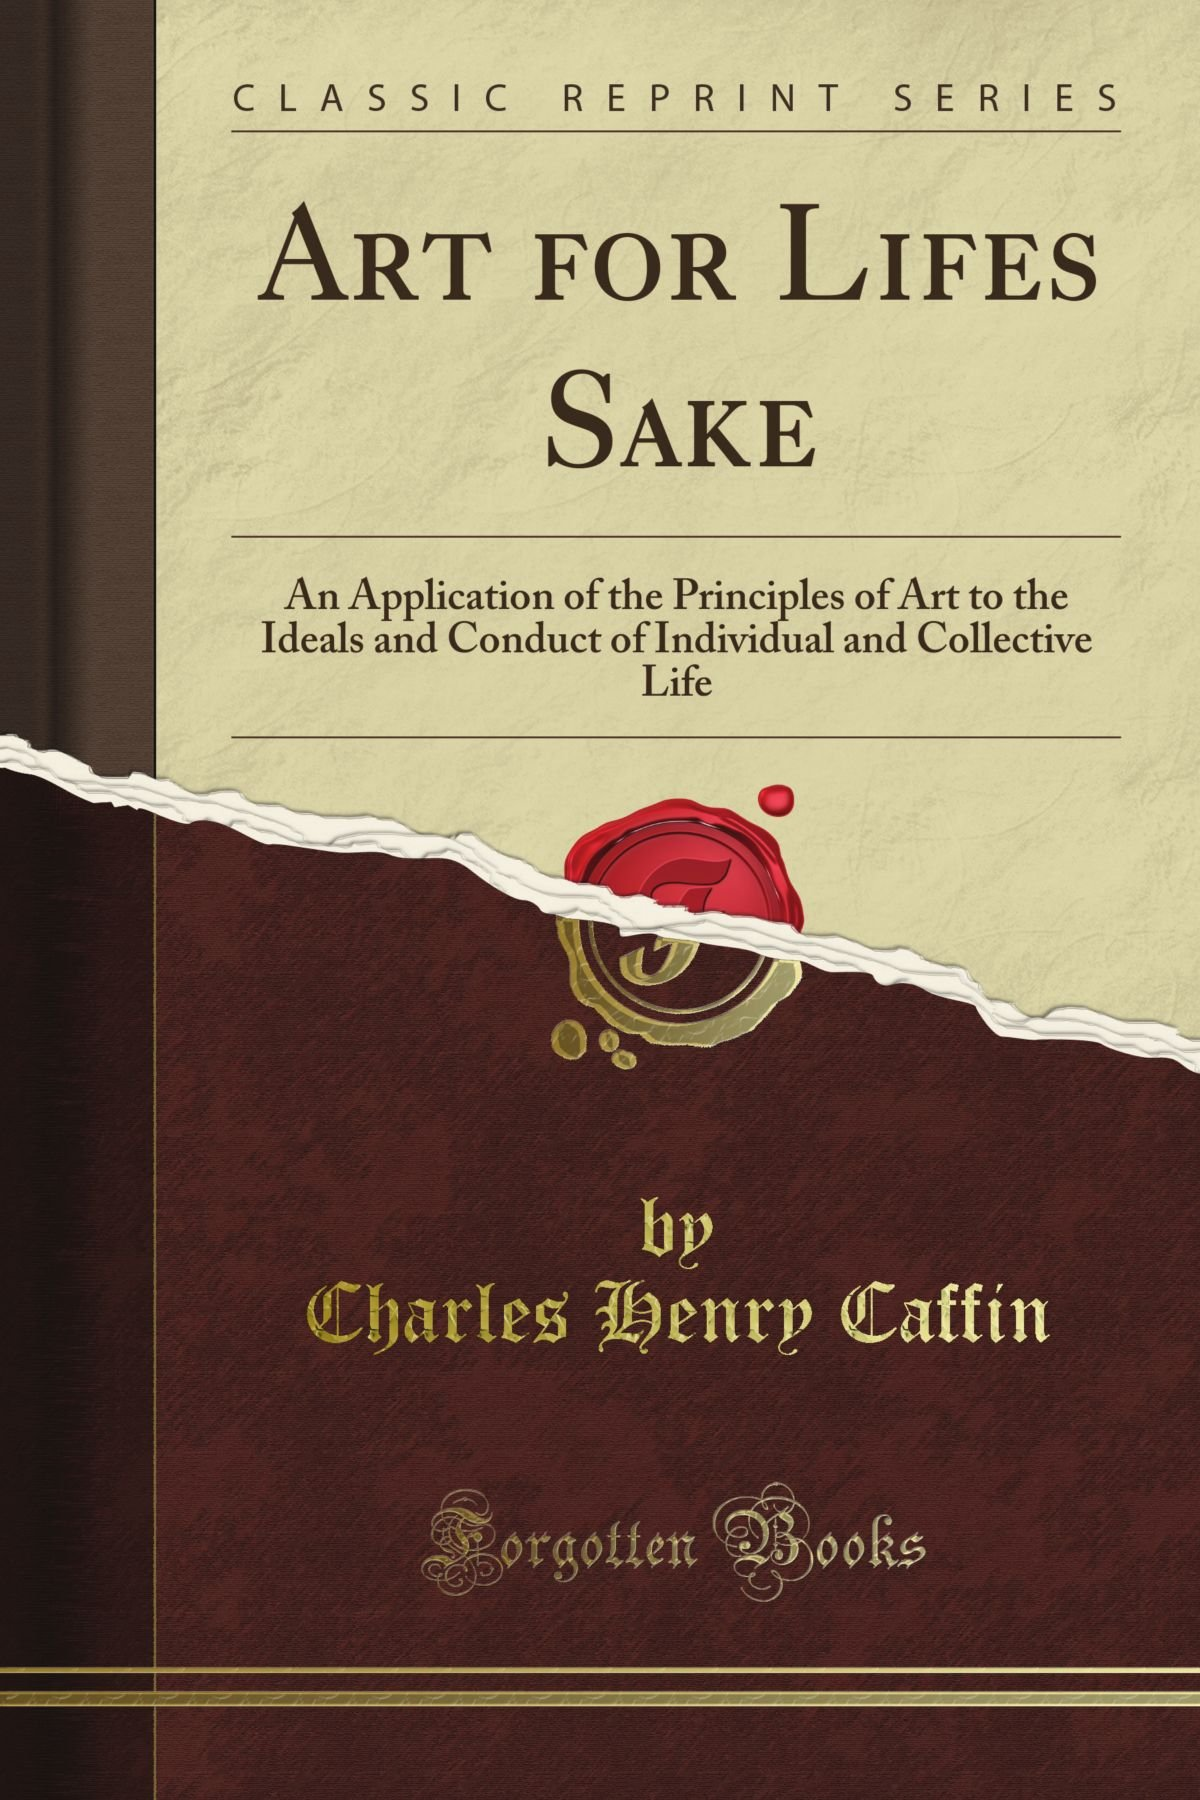 Download Art for Life's Sake: An Application of the Principles of Art to the Ideals and Conduct of Individual and Collective Life (Classic Reprint) PDF